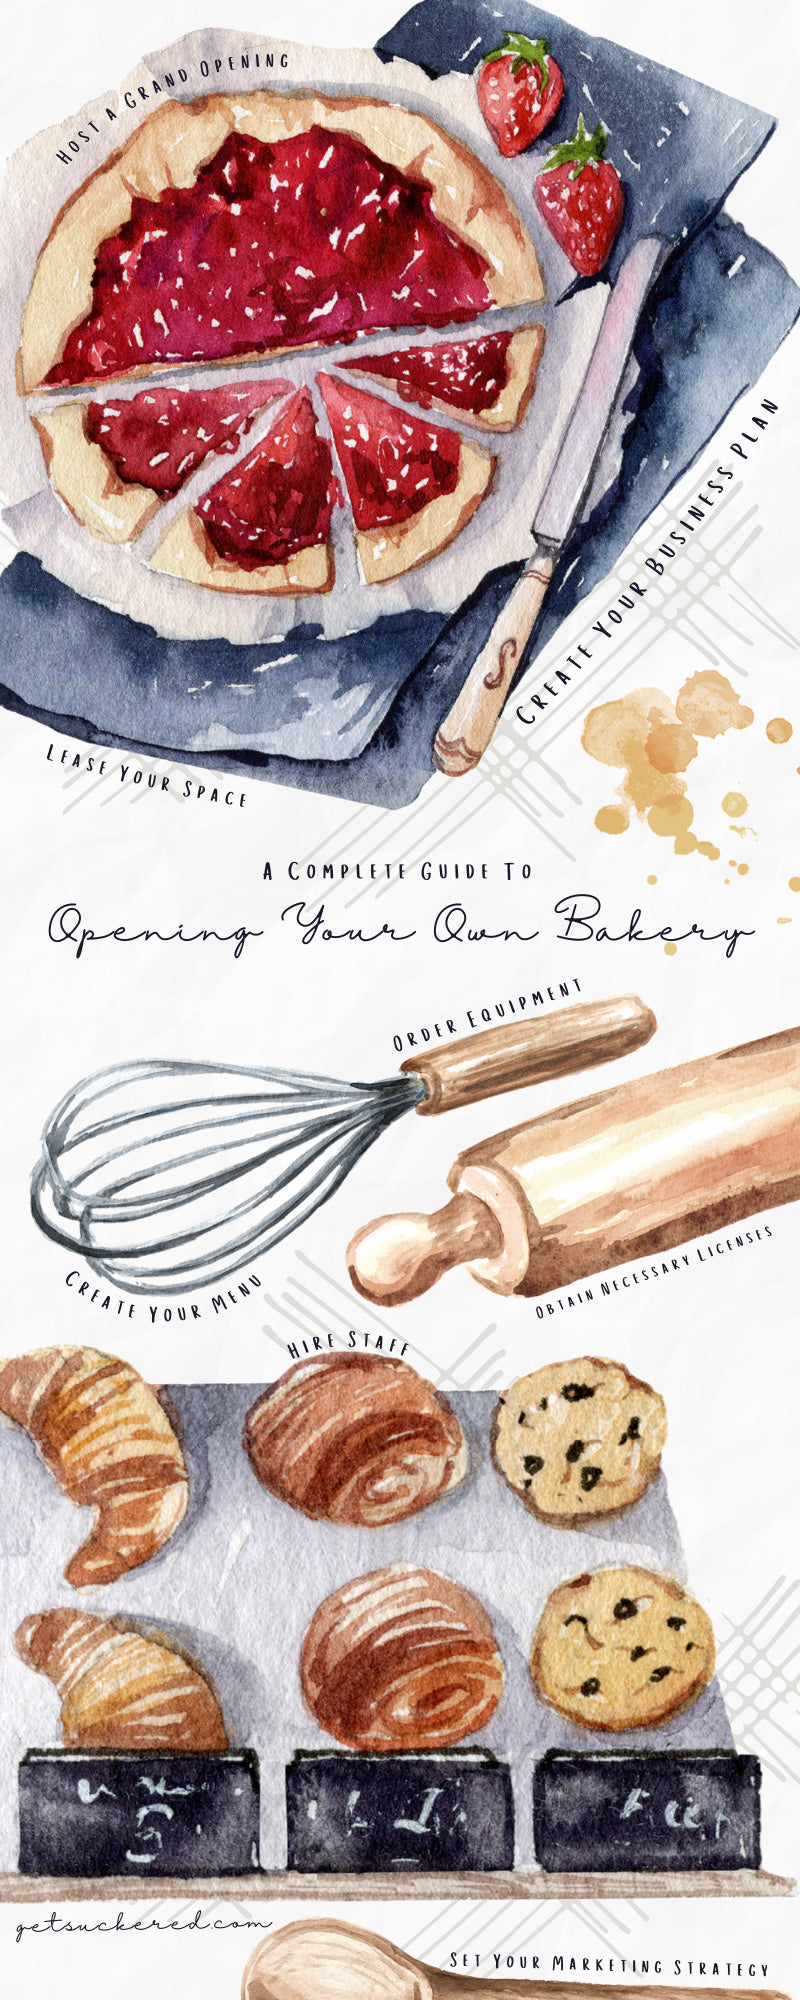 A Complete Guide To Opening Your Own Bakery